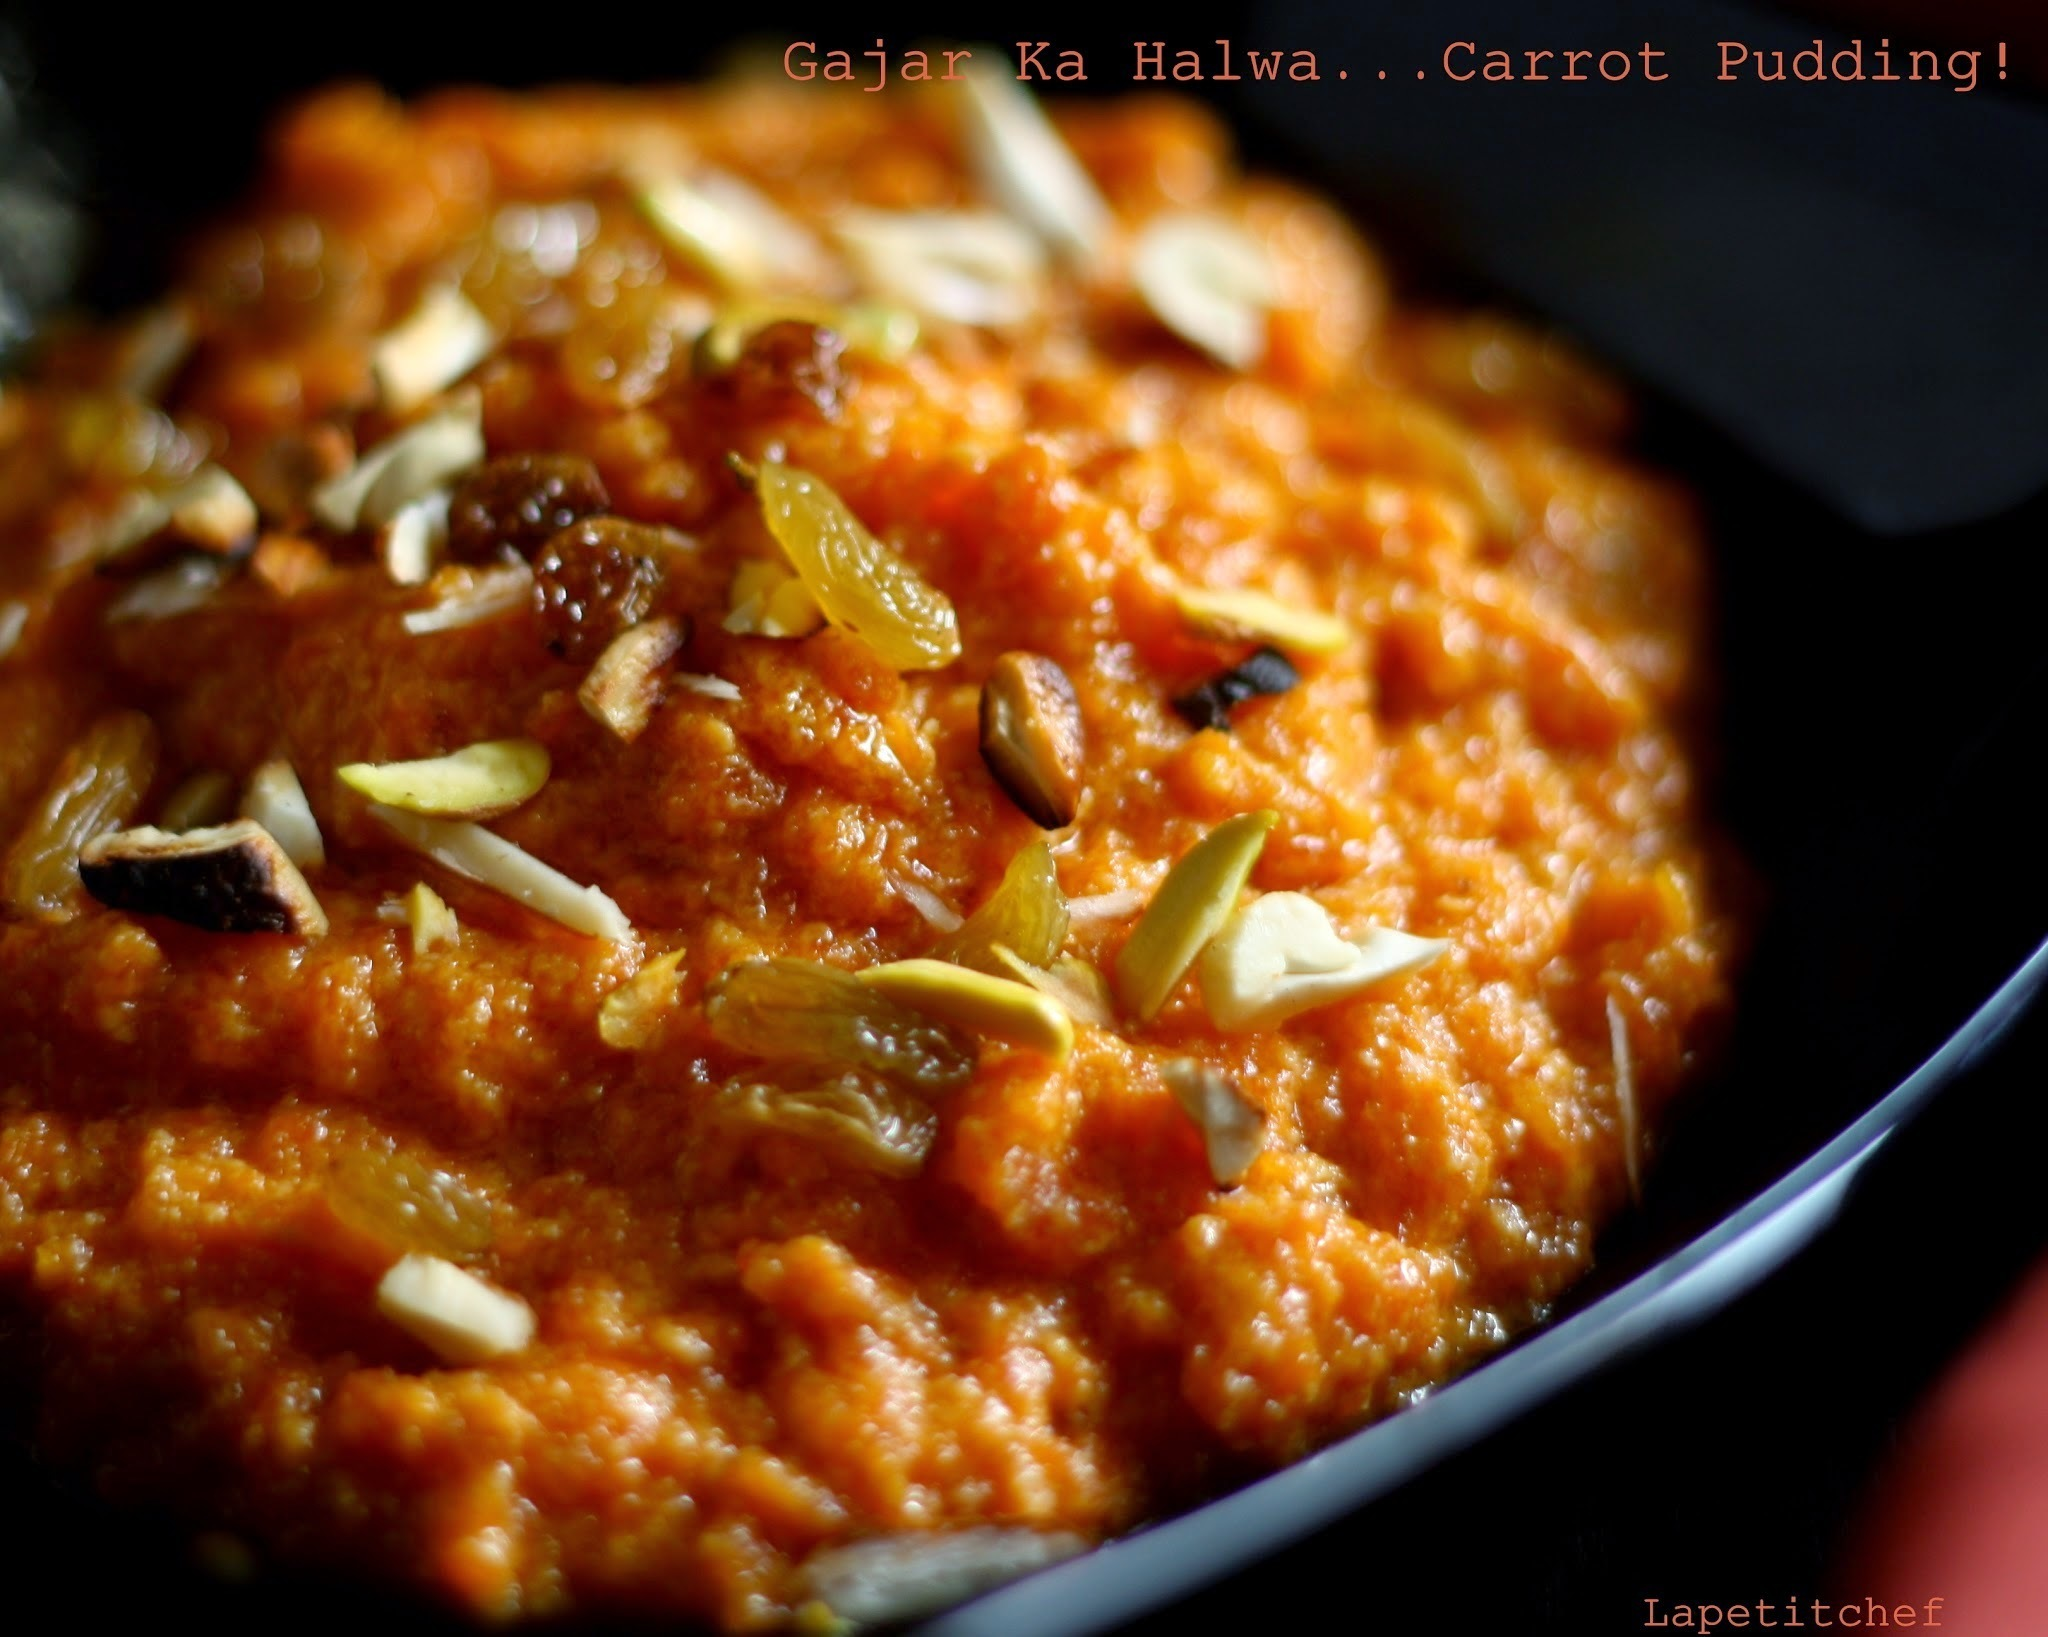 Gajar ka Halwa or Carrot Pudding